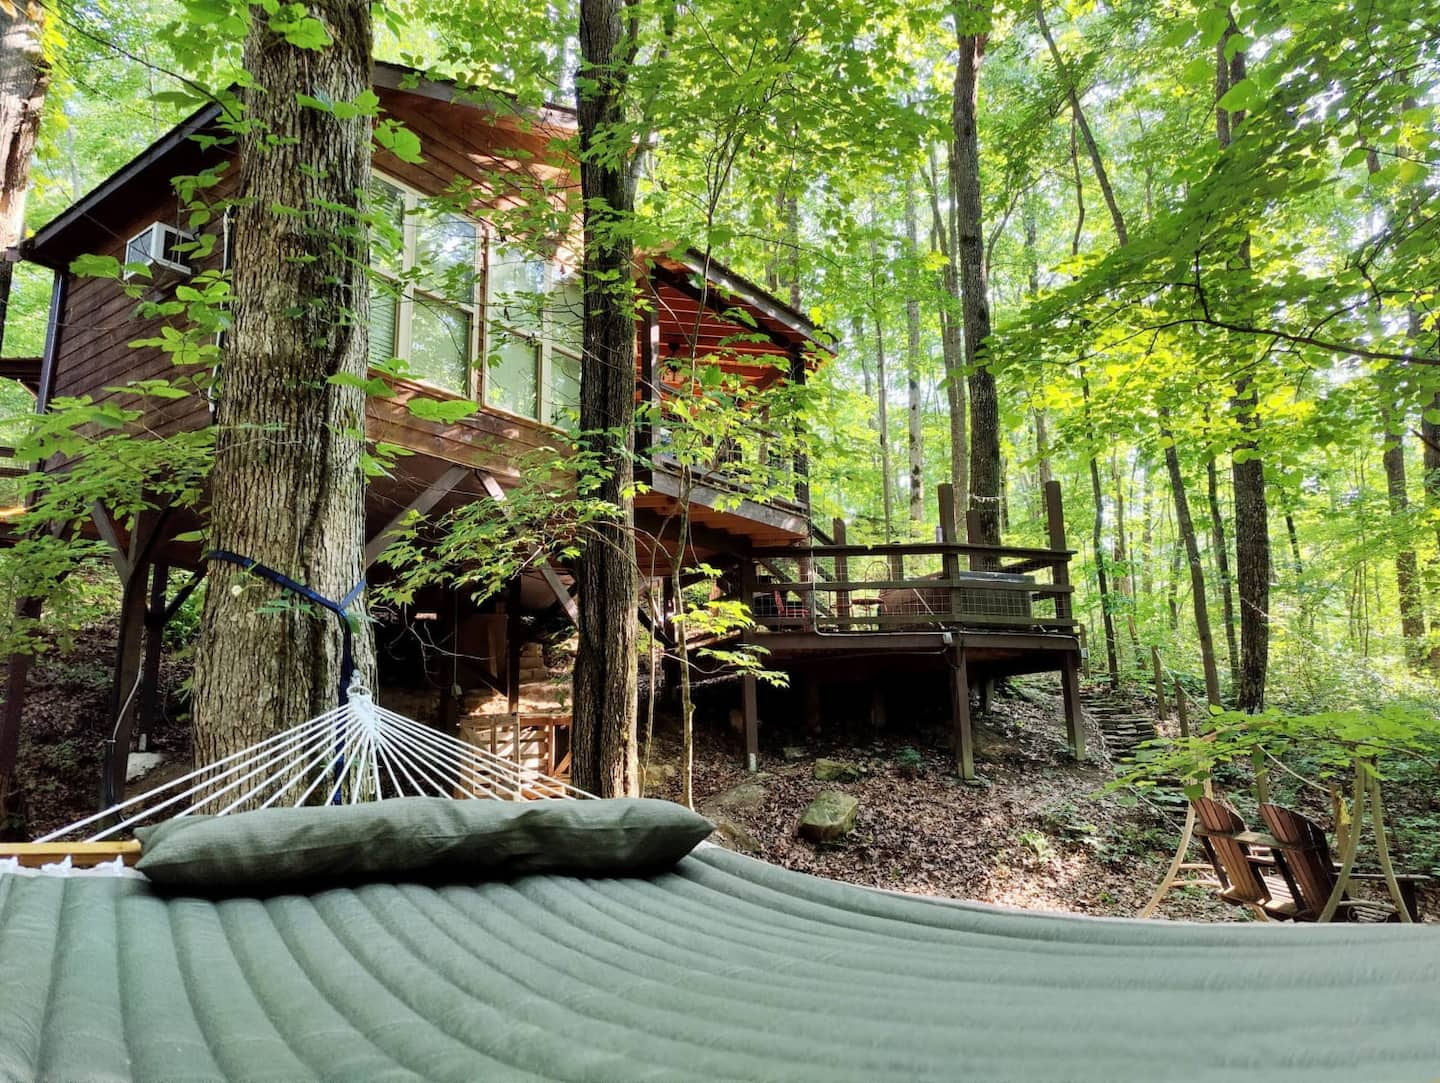 The Eagle Treehouse Rental in Tennessee